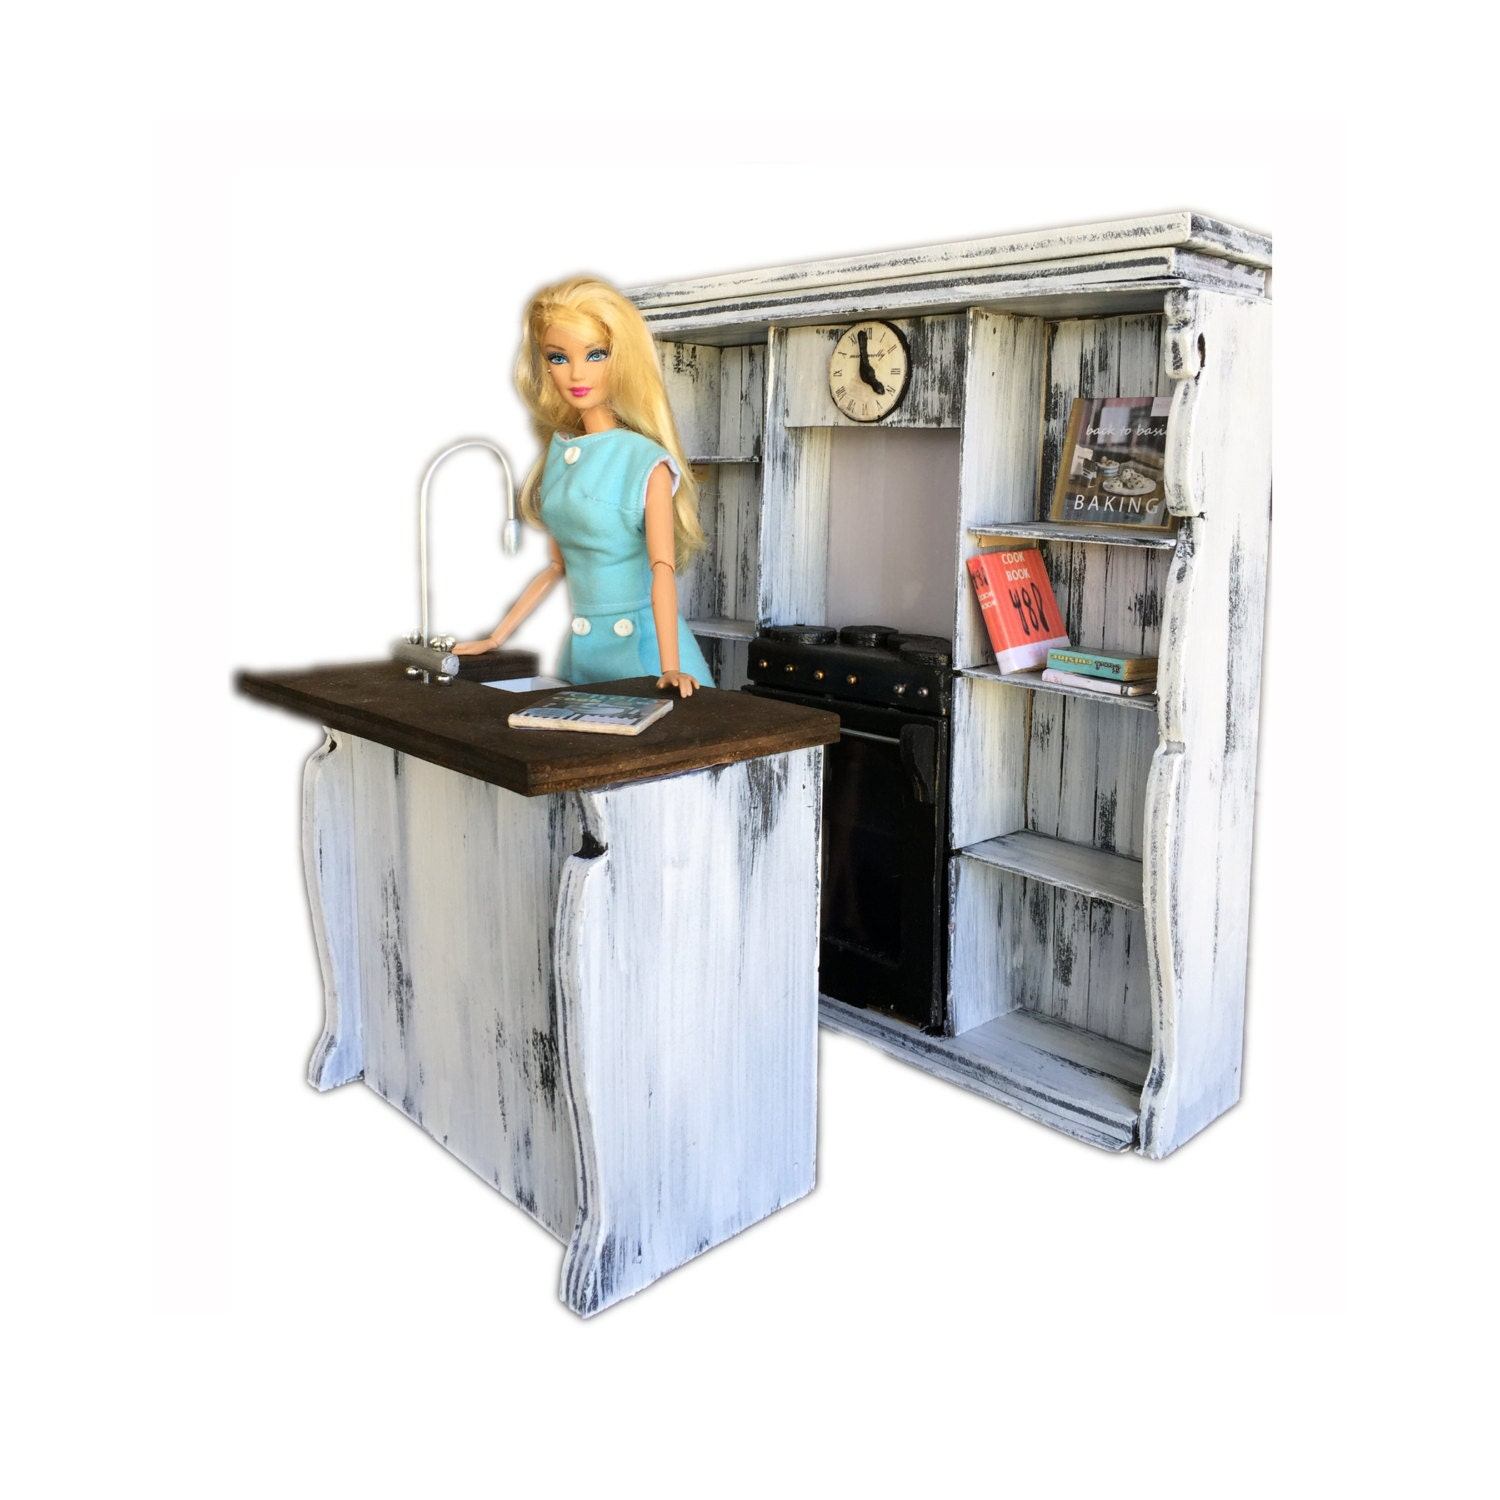 minimolly dollhouse furniture barbie size kitchen set french provincial style oven sink shelves cookbooks 16 scale